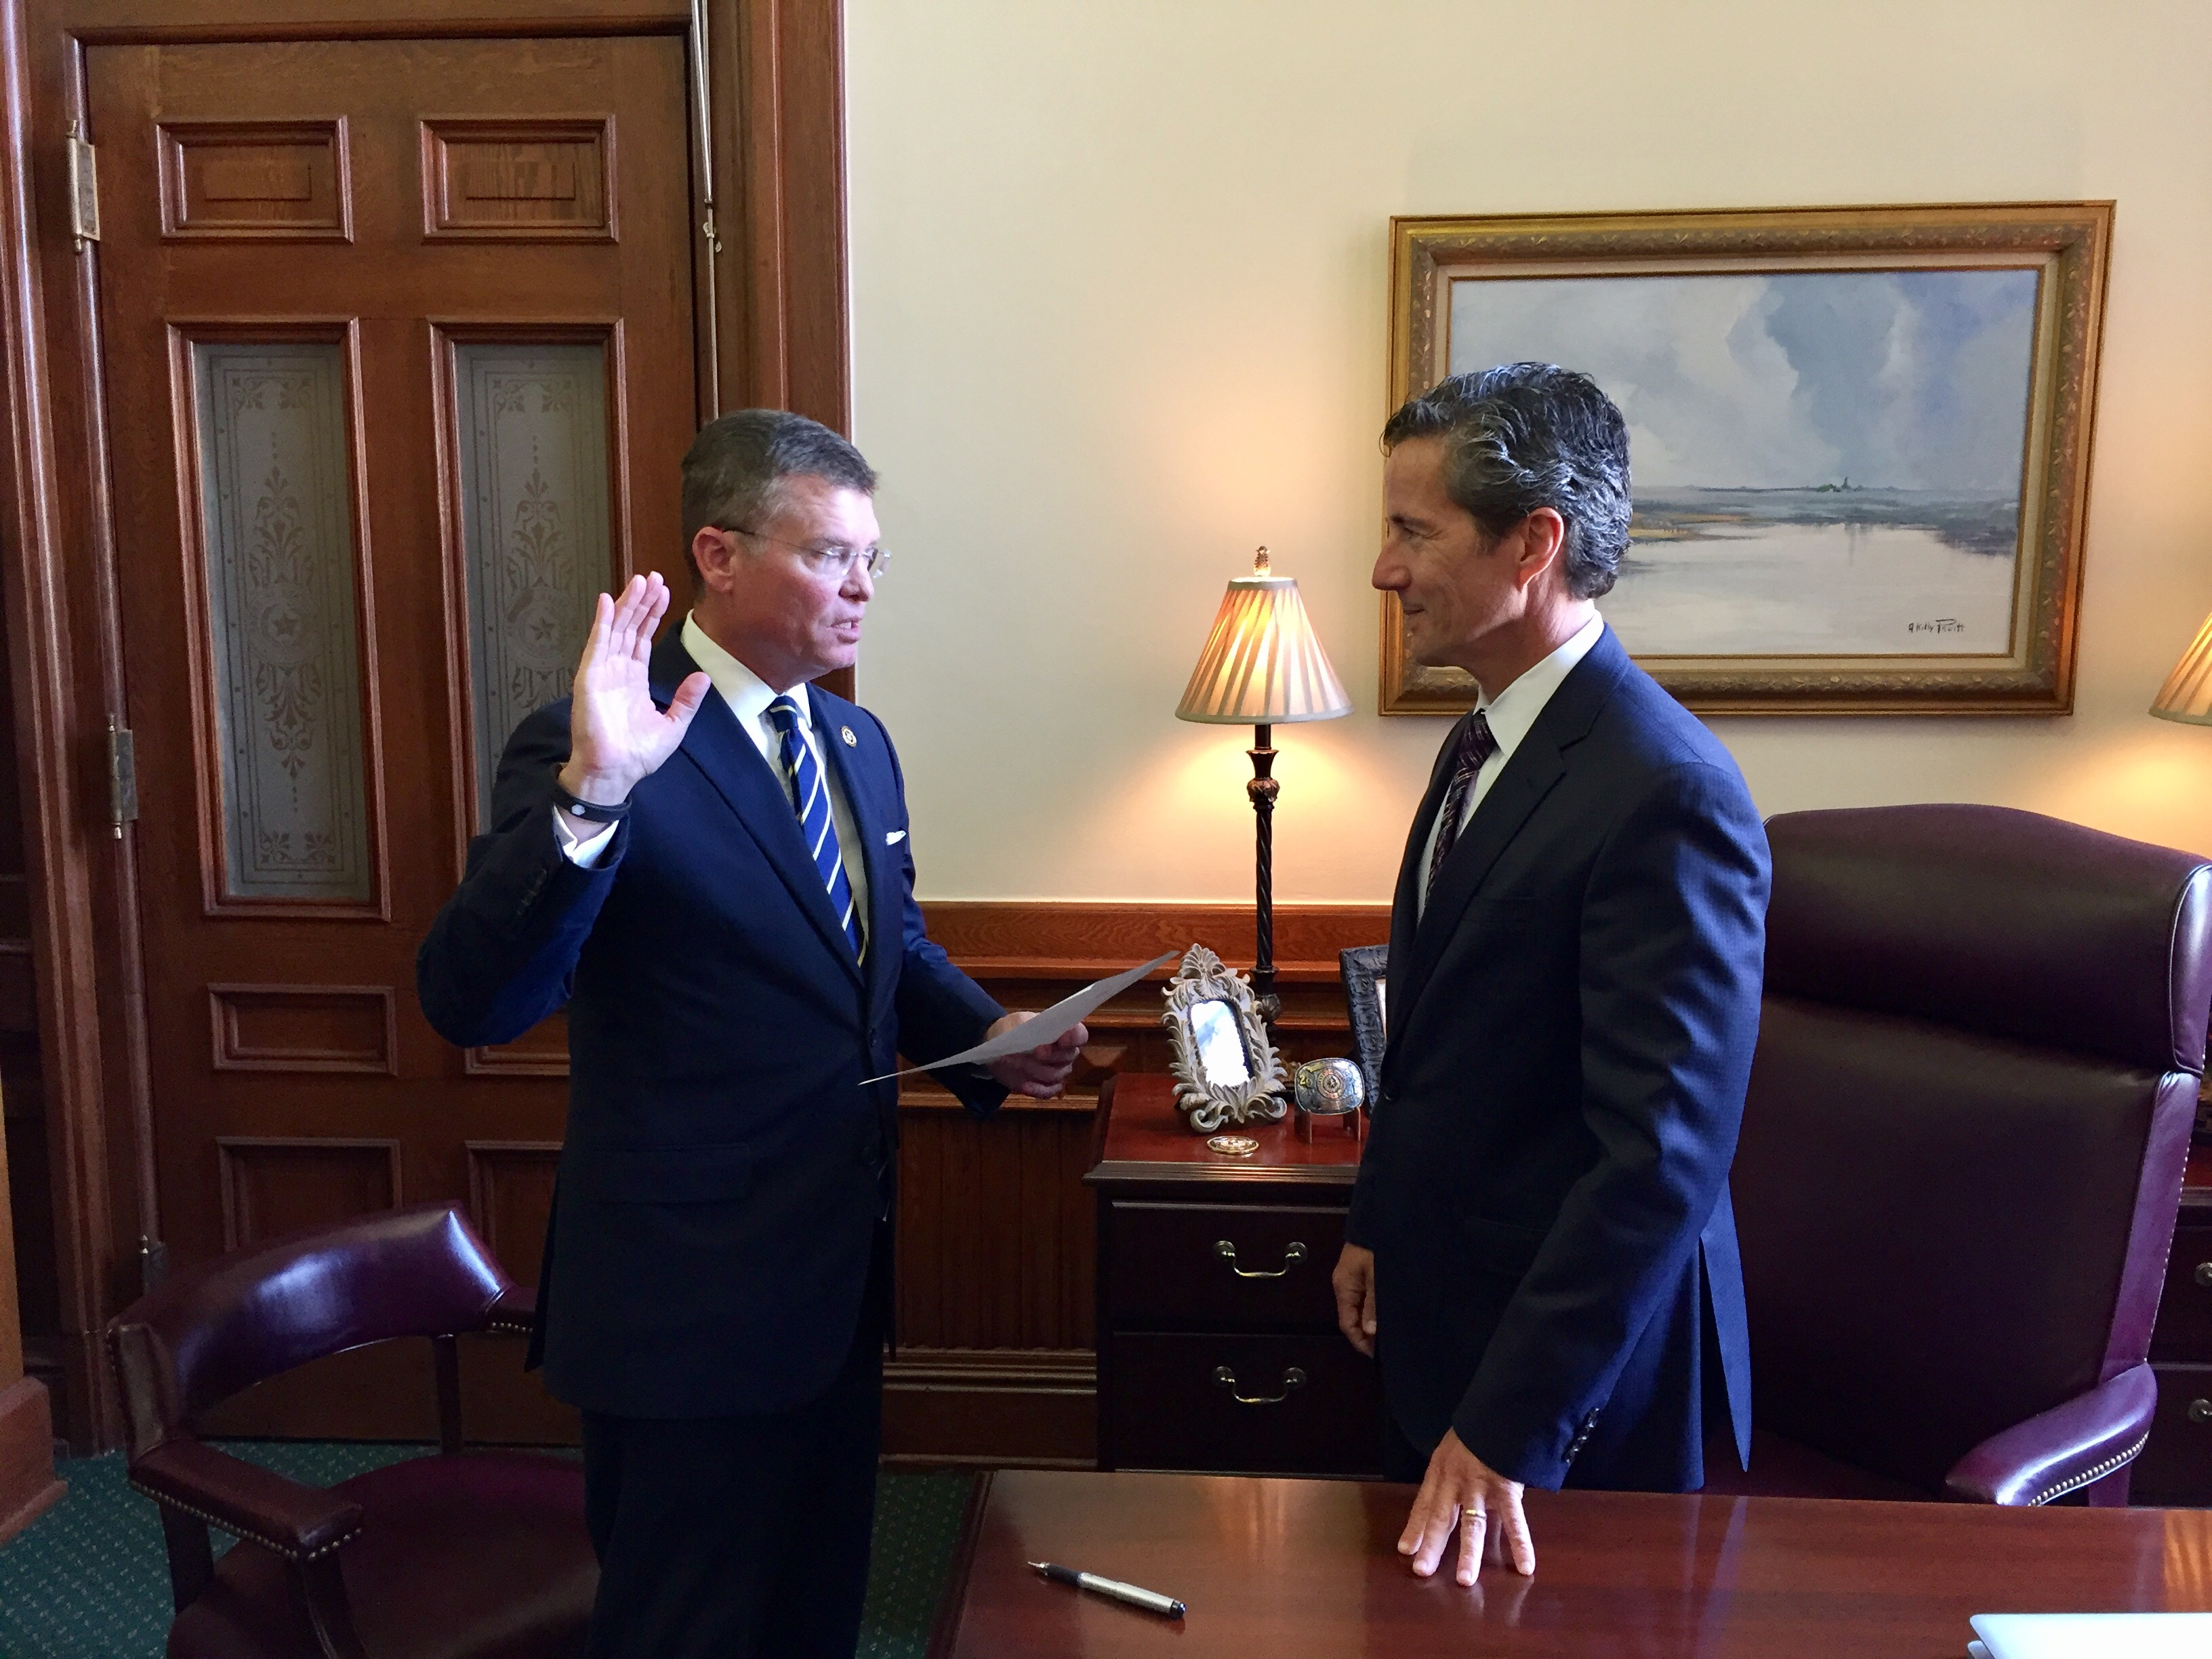 Serving Texas in several ways, Kevin Lilly is sworn in as the Texas Alcoholic Beverage Commission Chairman by State Senator Kelly Hancock, Senate District 9, at the State Capitol, Austin, Texas, May 15, 2017.  Lilly is also a lieutenant colonel in the Texas State Guard and commands the 8th Regiment.  (Courtesy Photo/The Texas Senate)